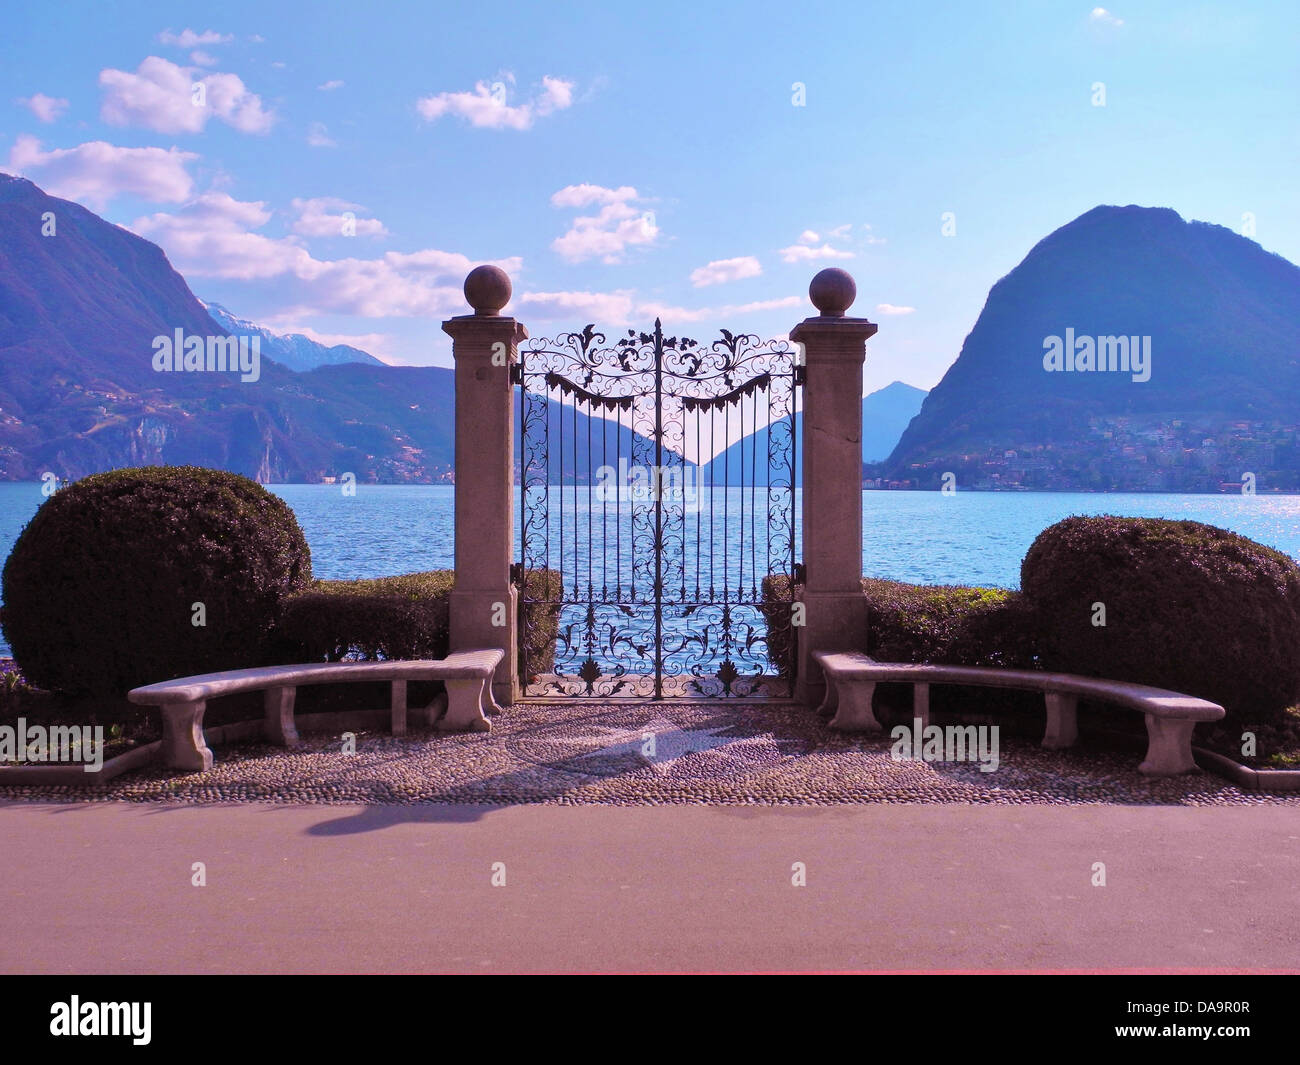 Switzerland, Ticino, Lugano, lake, Lake Lugano, bank way, gate, iron, columns, mountains, scenery - Stock Image